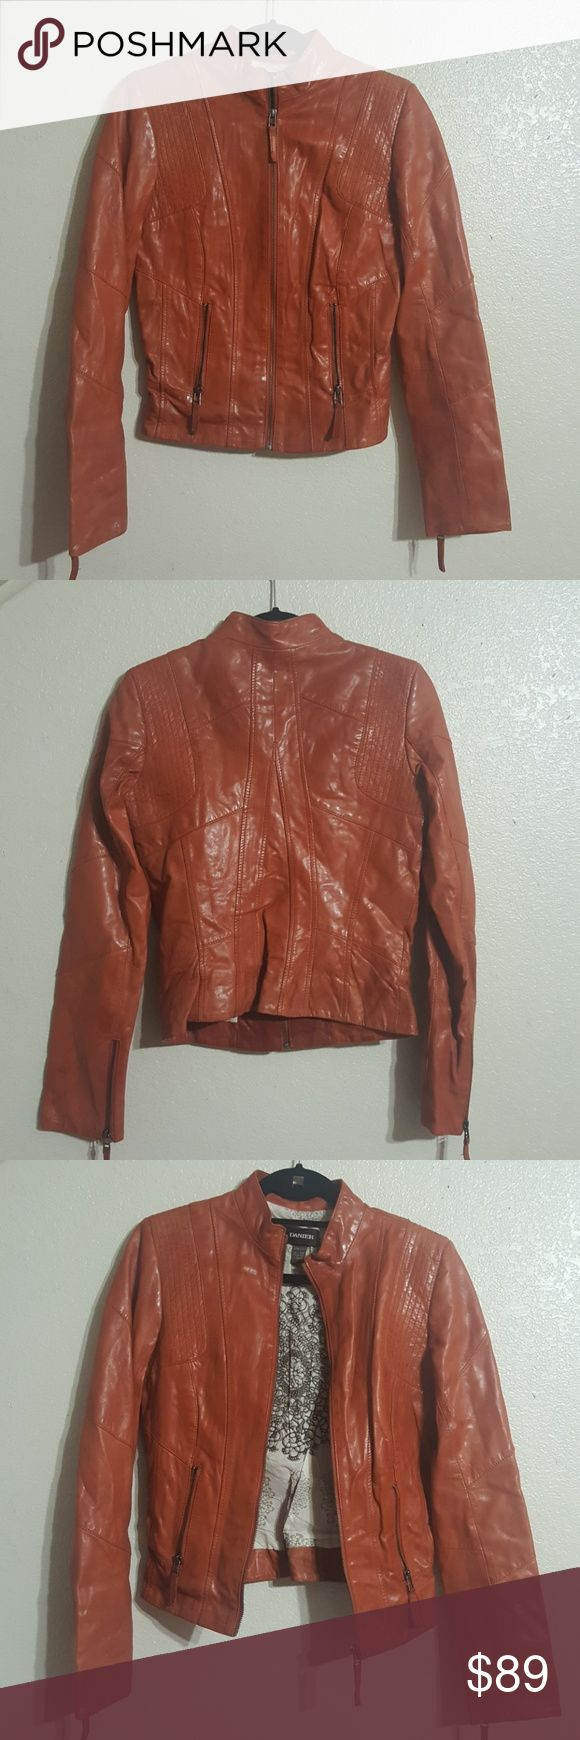 "DANIER MOTORCYCLE LEATHER JACKET Beautiful and sylish Danier brown leather jacket.  Zipper closure with sleeves zipper detail and two small front pockets.  Pre-owned in great condition, beautiful natural leather patina that gives character and personality.  Size XS, bust 17"", waist 15"", length 23"". DANIER Jackets & Coats"